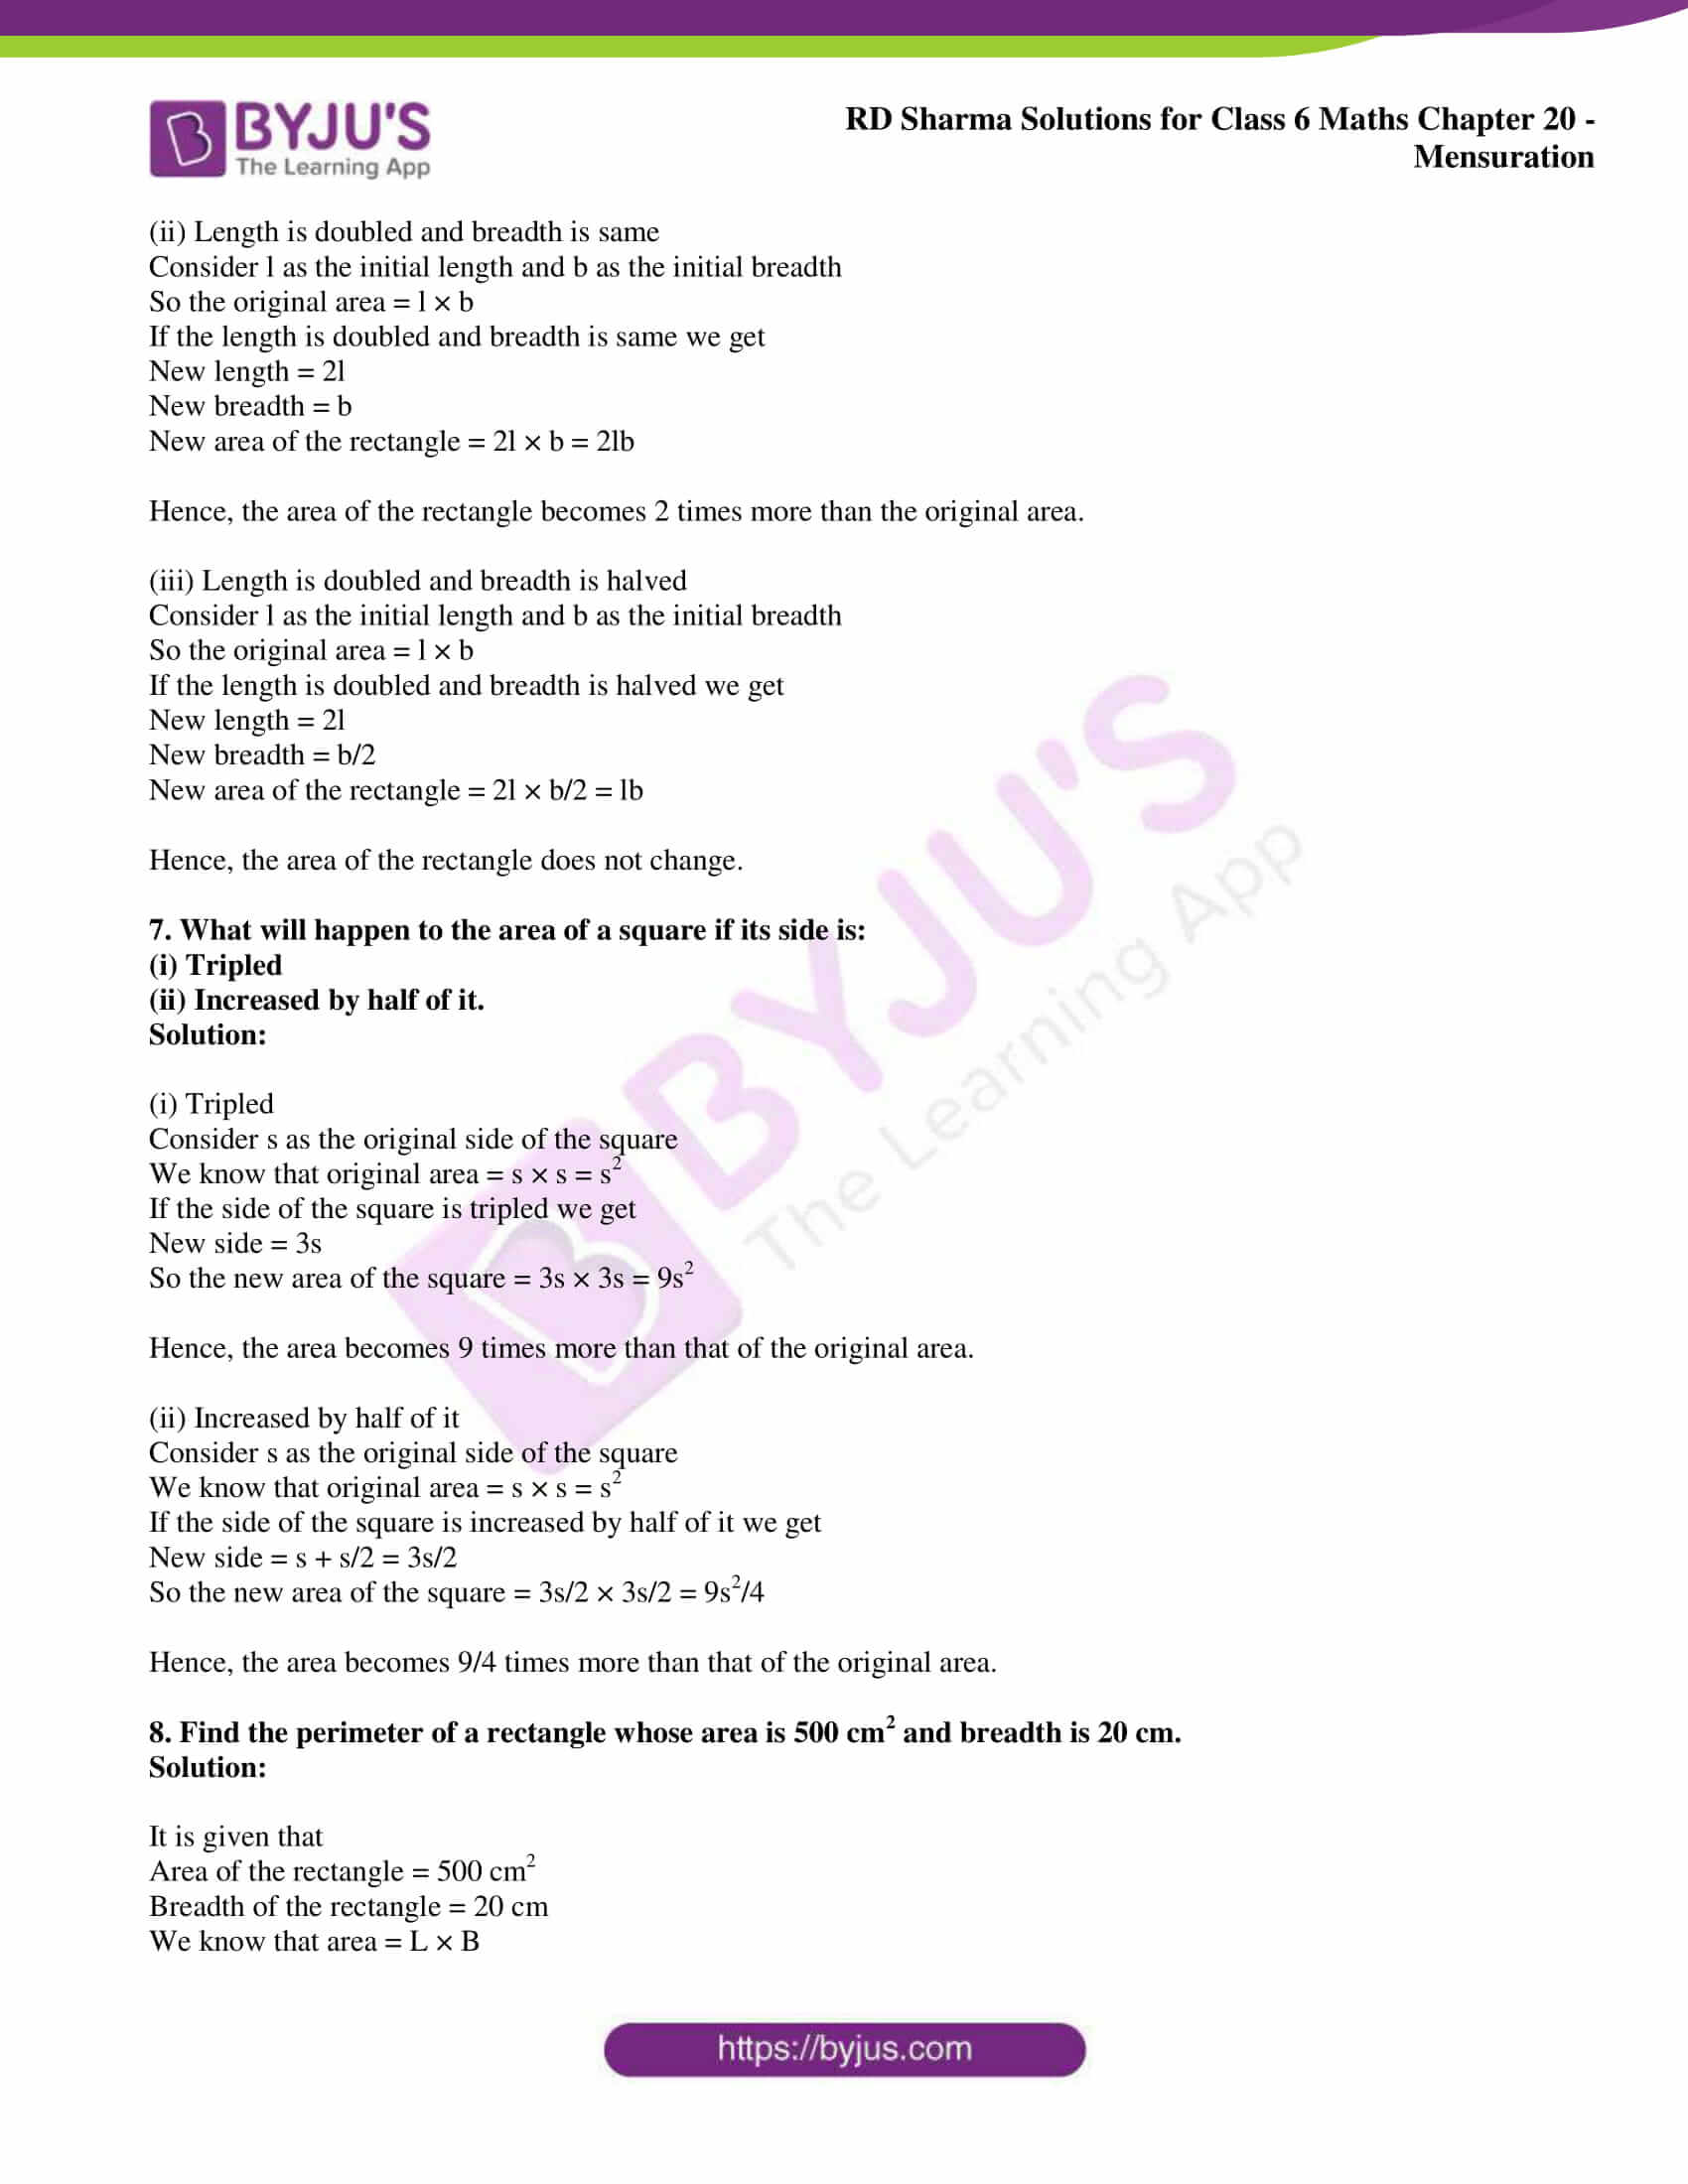 rd sharma solutions nov2020 class 6 maths chapter 20 exercise 4 3